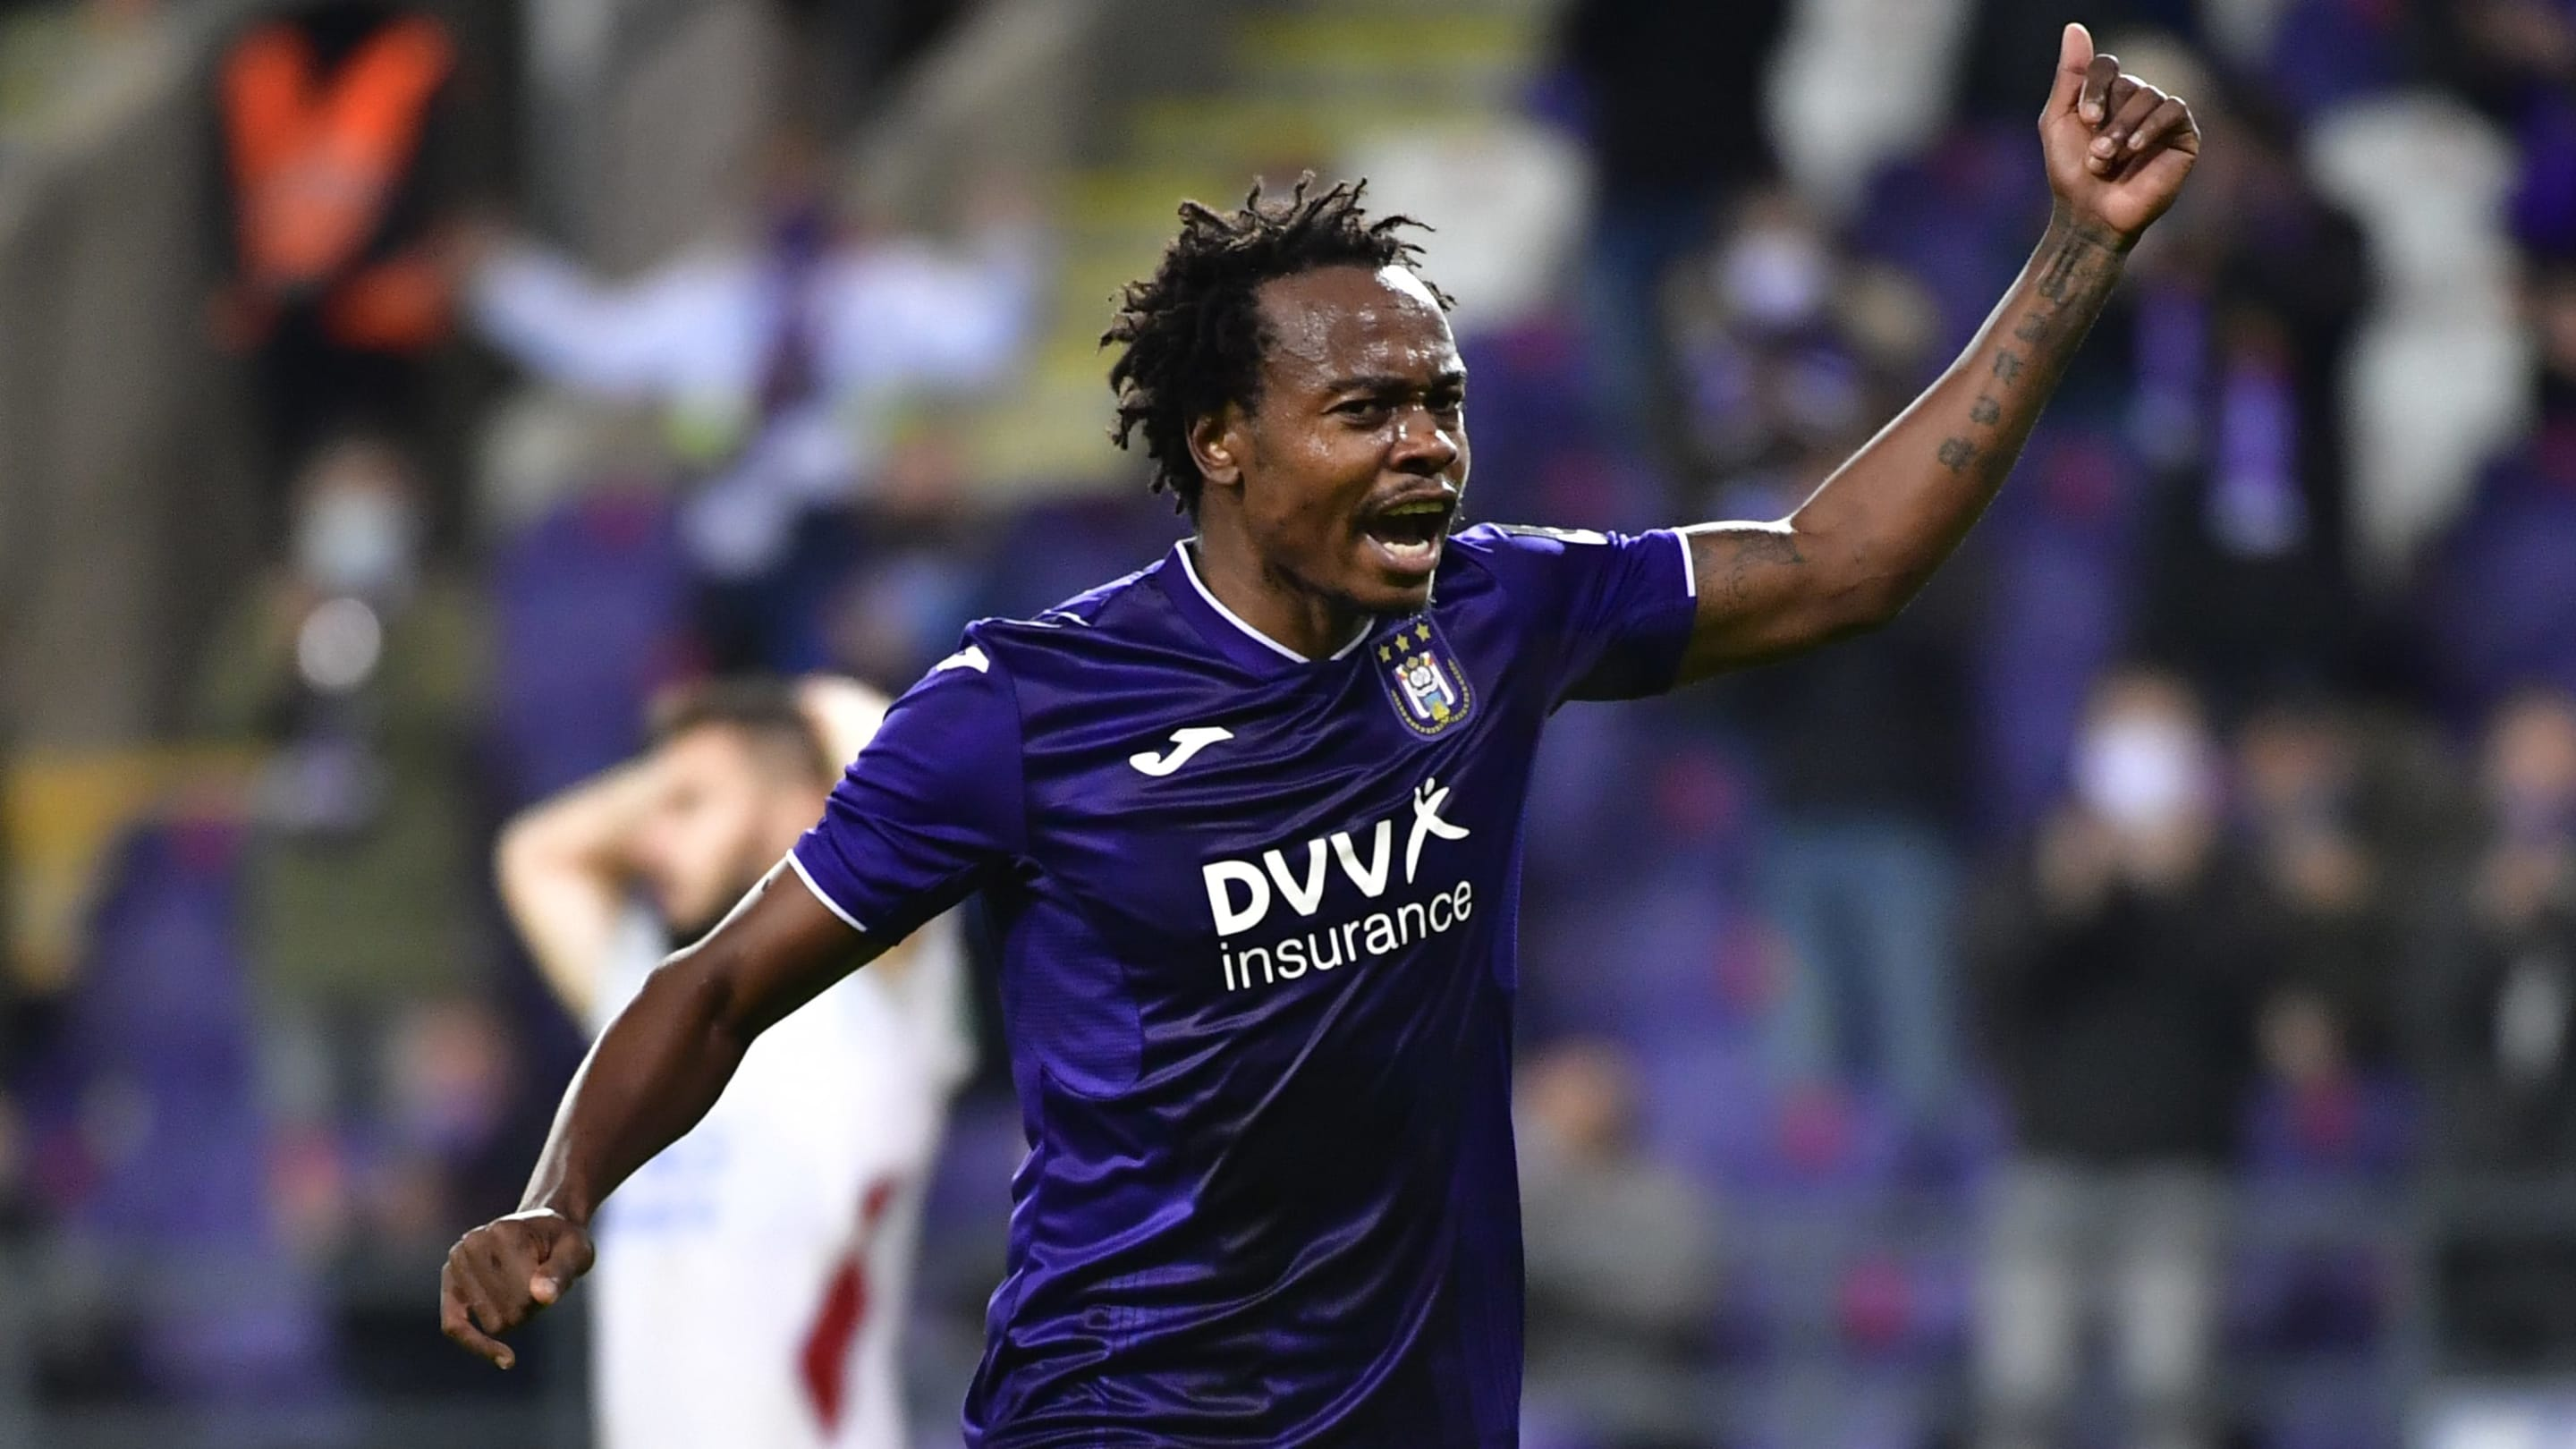 Percy Tau: The South African superstar Brighton have waited two-and-a-half years to bring to the Premier League